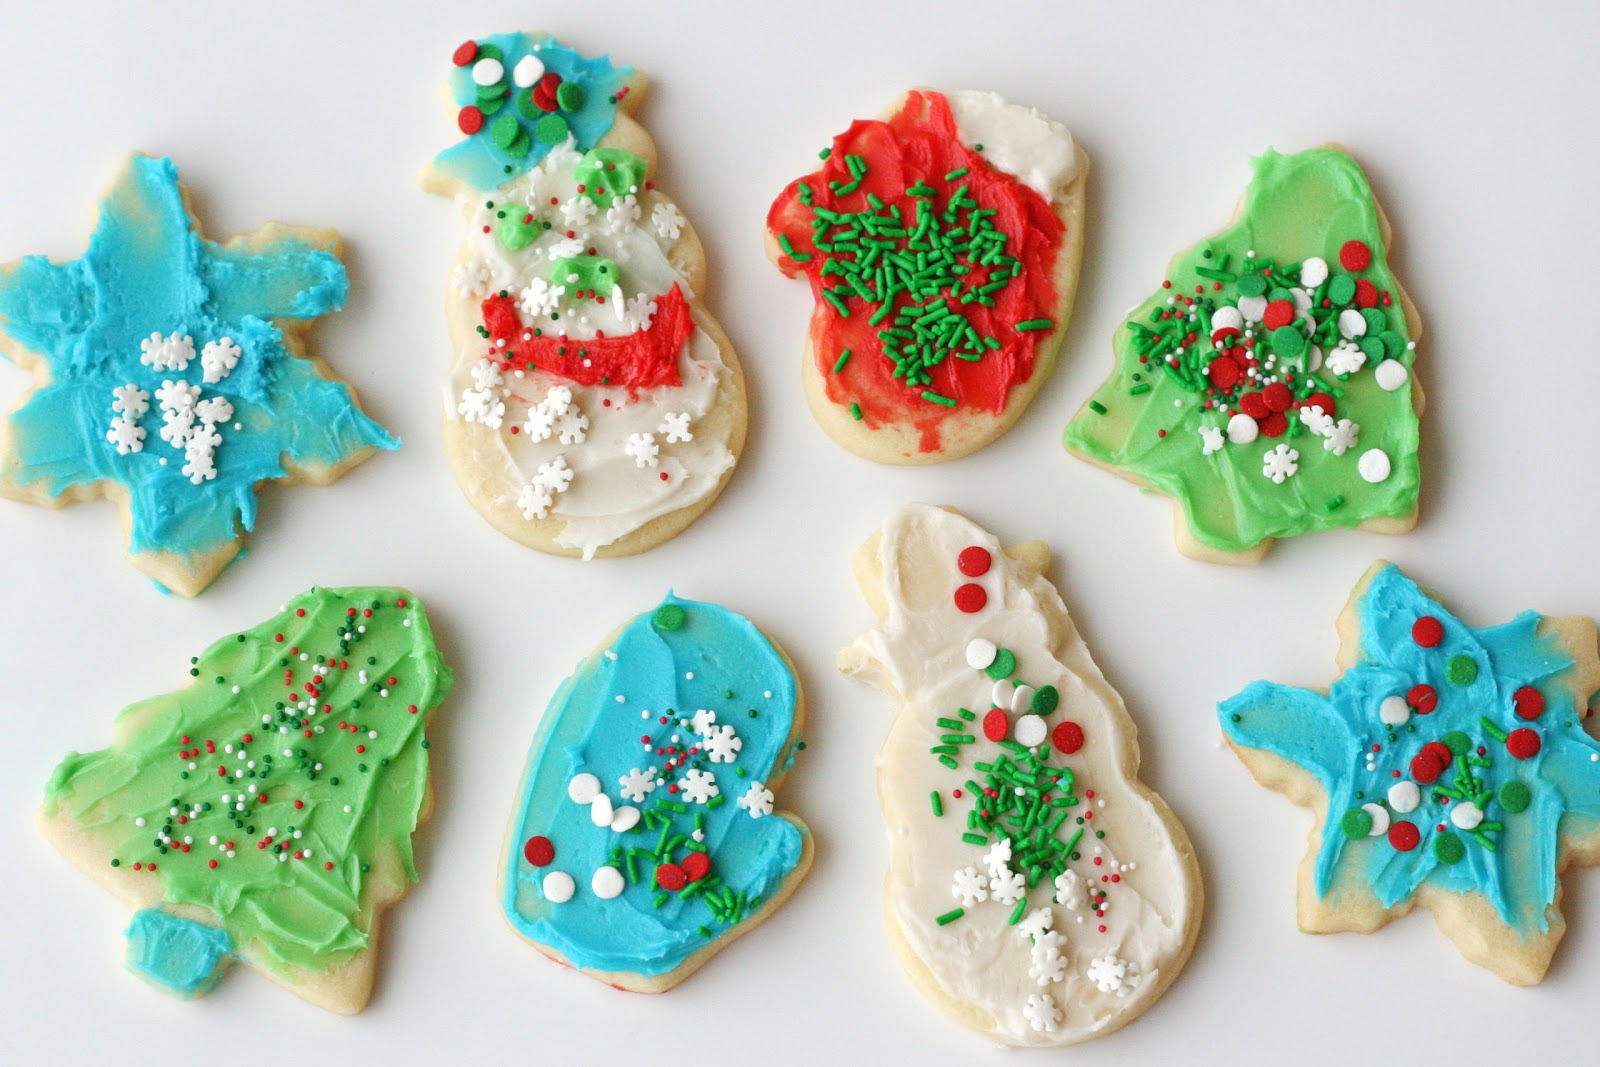 Cookie Decorating Kits For Kids Glorious Treats